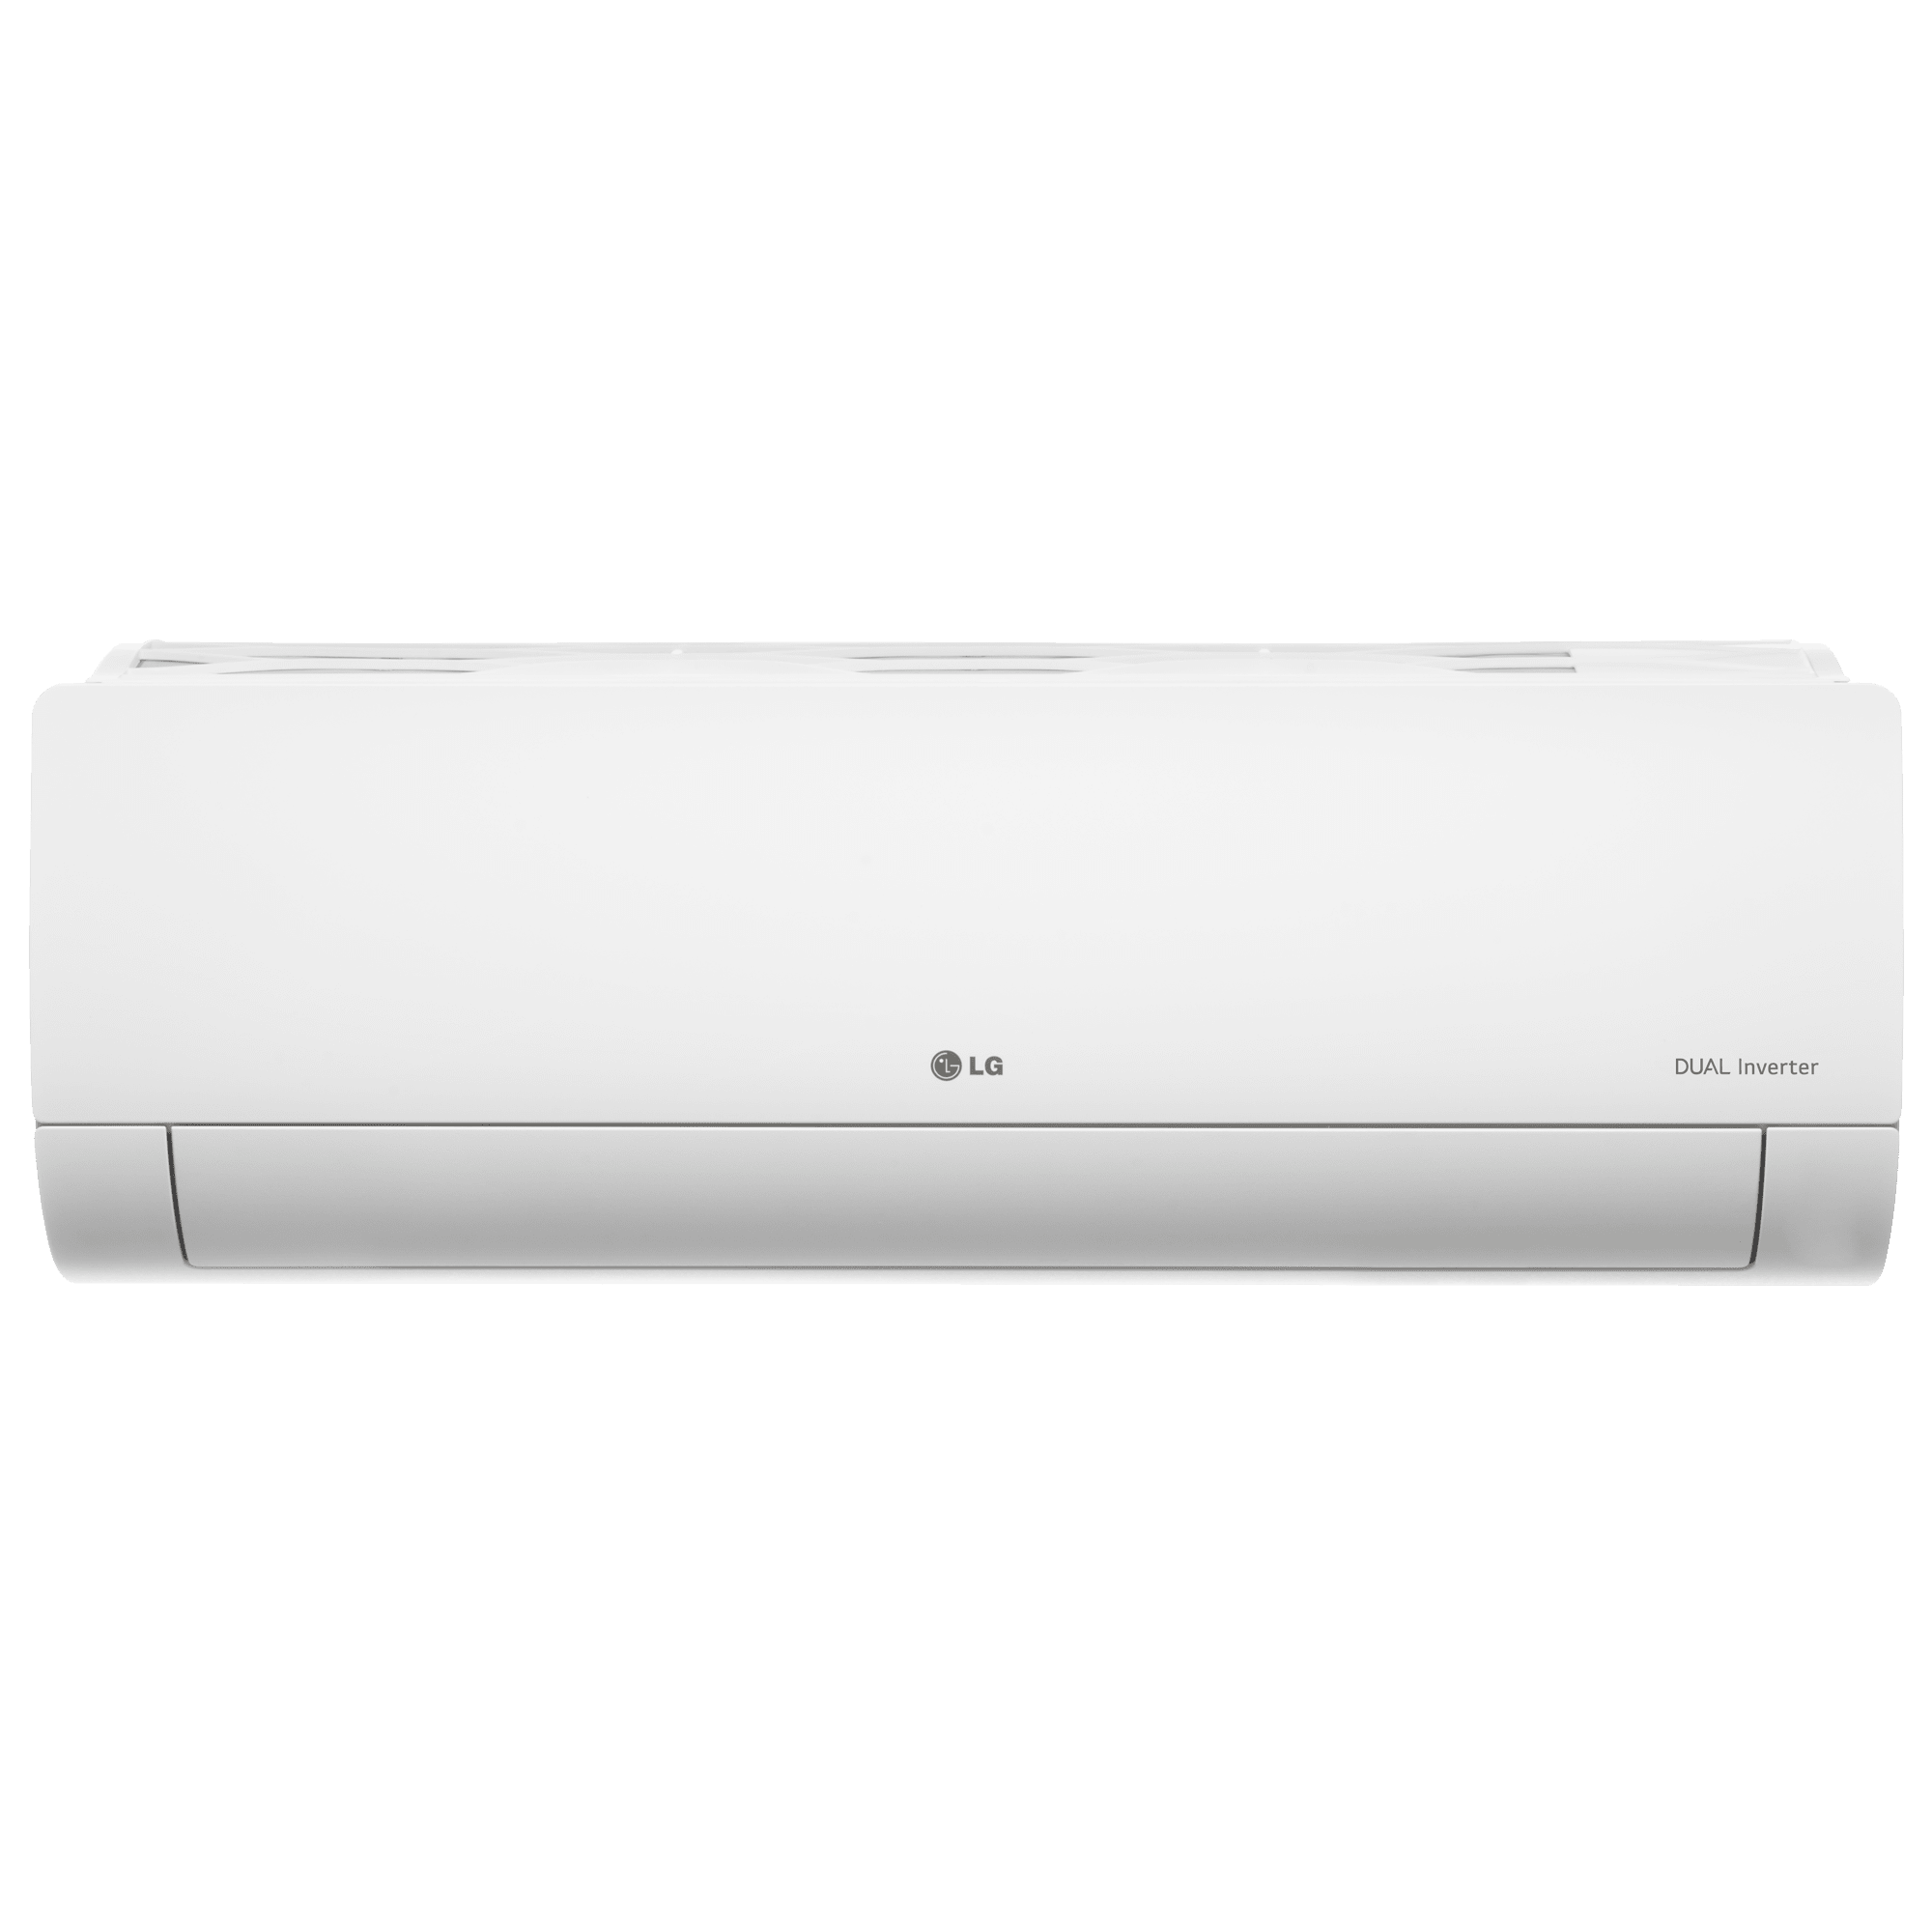 LG 1.5 Ton 4 Star Inverter Split AC (Air Purification Function, Copper Condenser, MS-Q18ANYA, White)